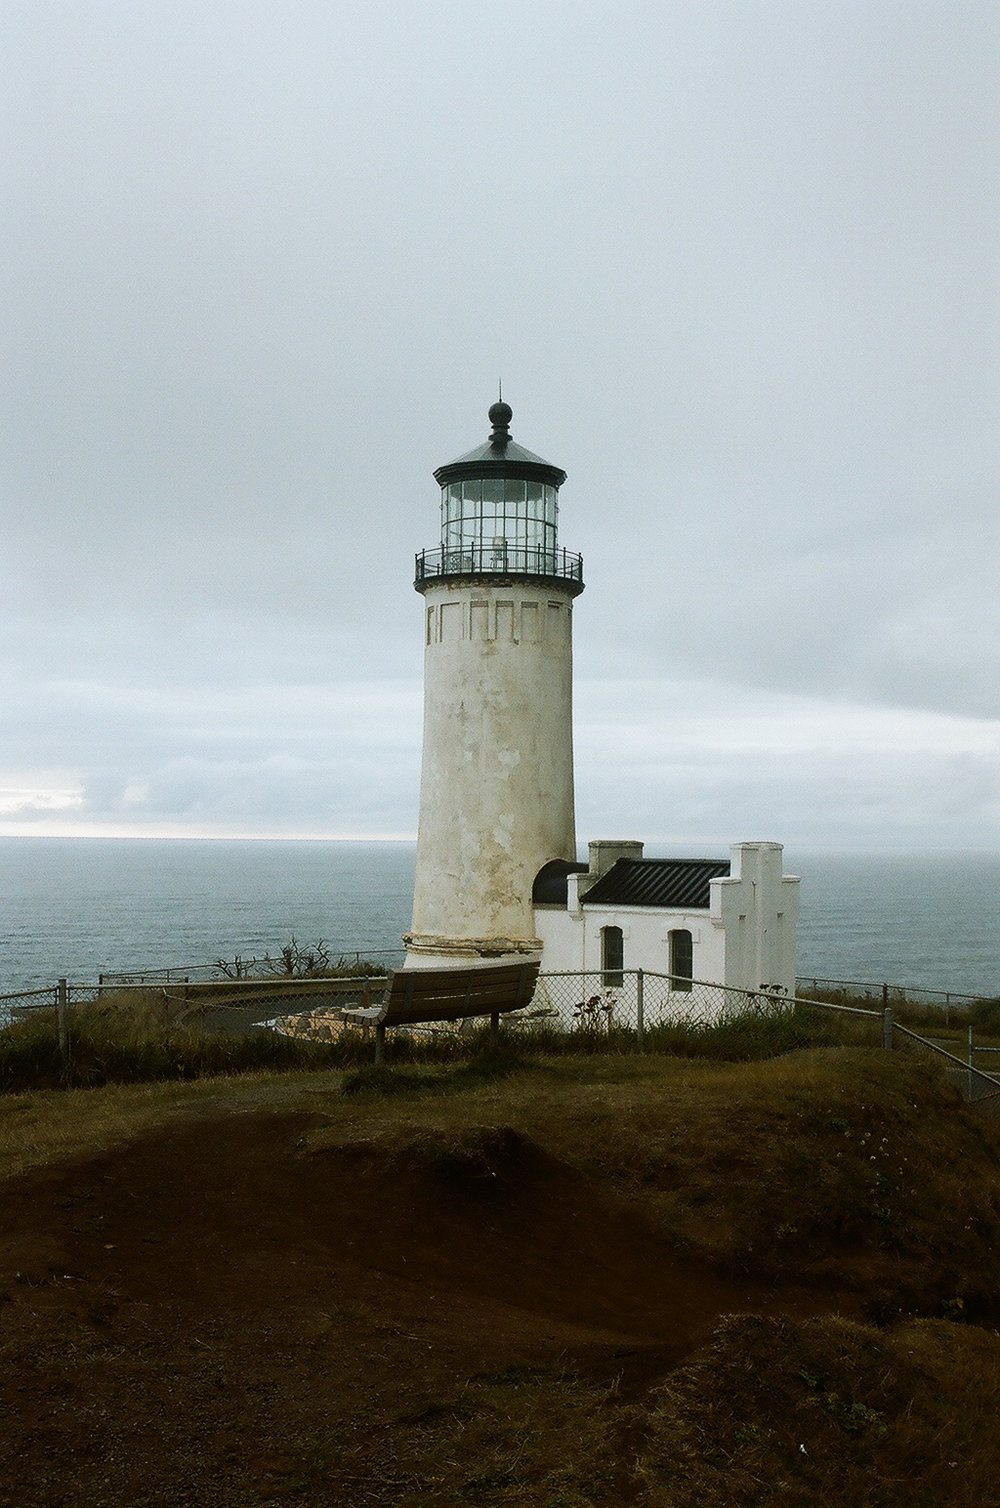 I've always had a special place for cool lighthouses.